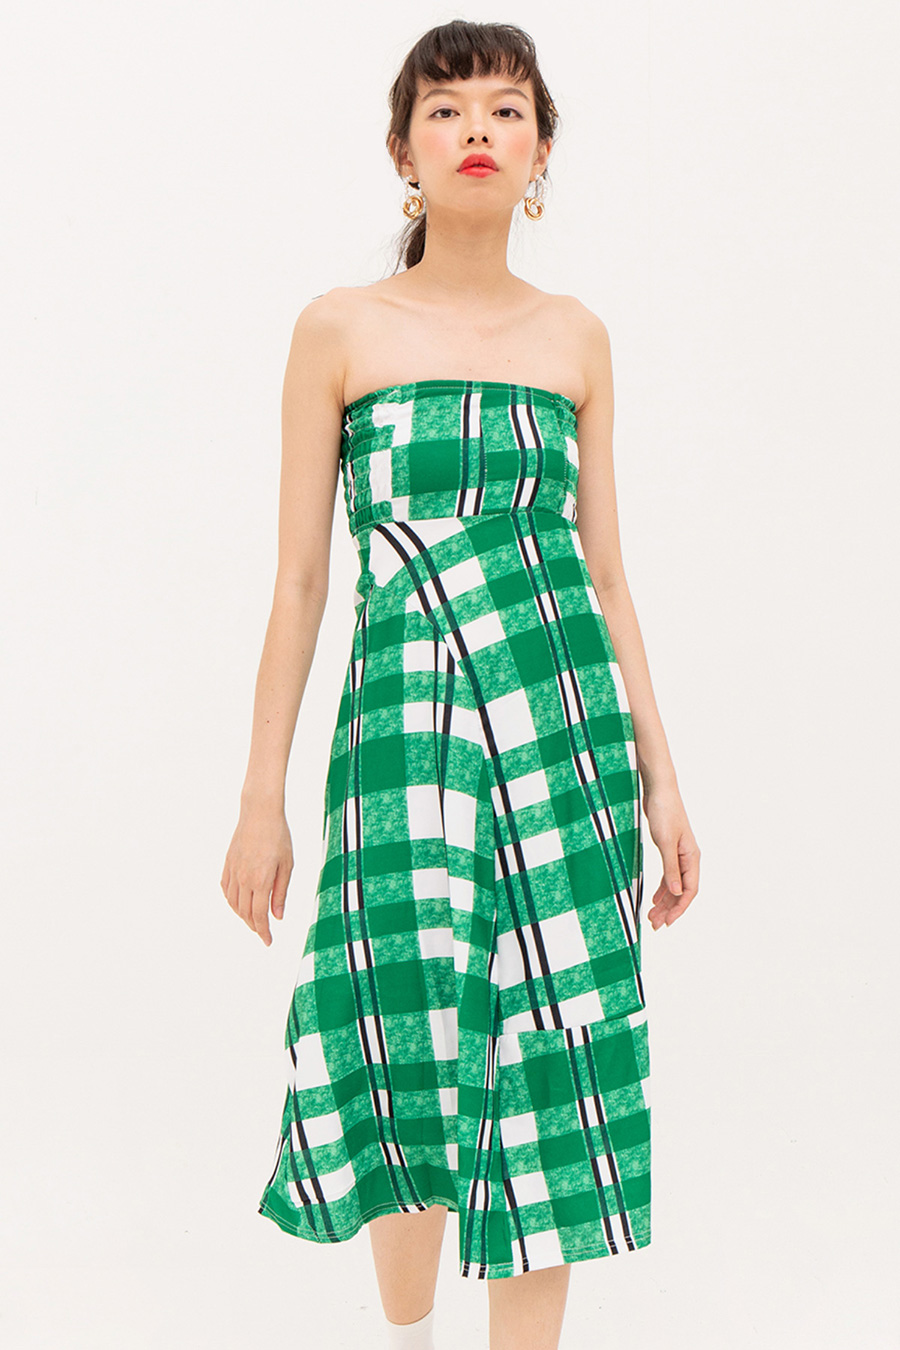 FRANCETTE DRESS - EMERALD PLAID